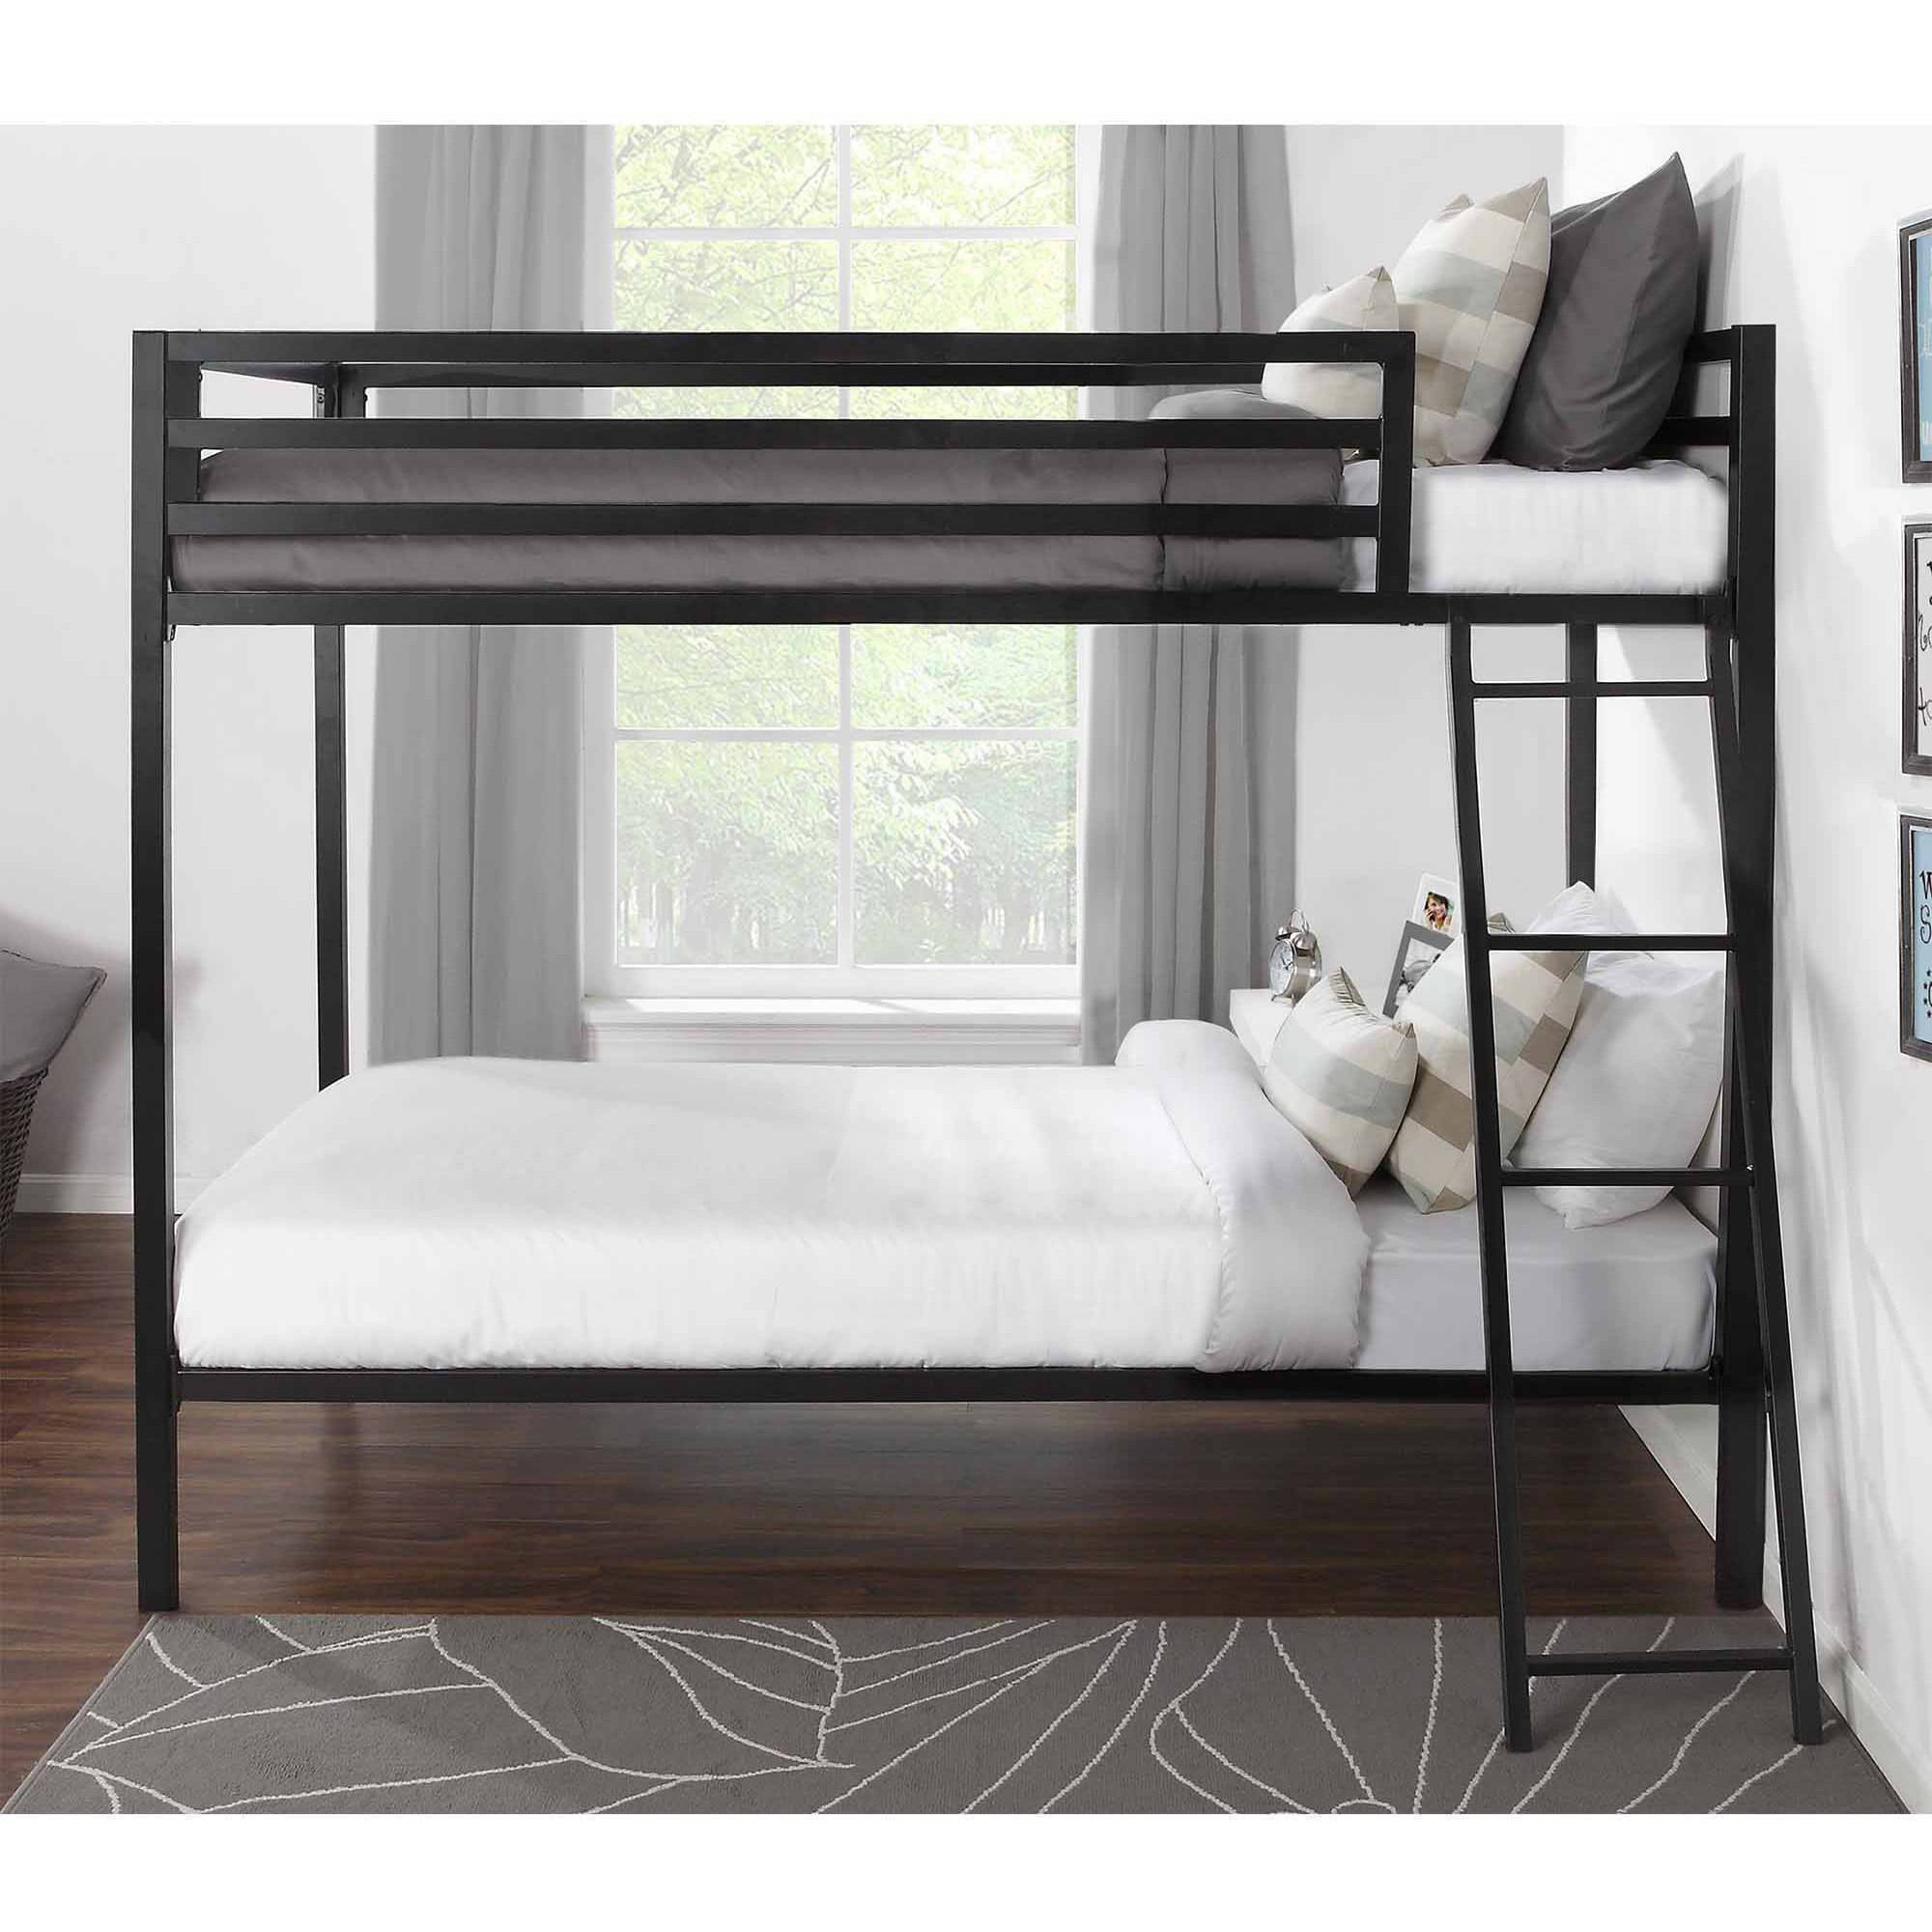 bunk bed multiple colors about this product picture 1 of 7 picture 2 of 7